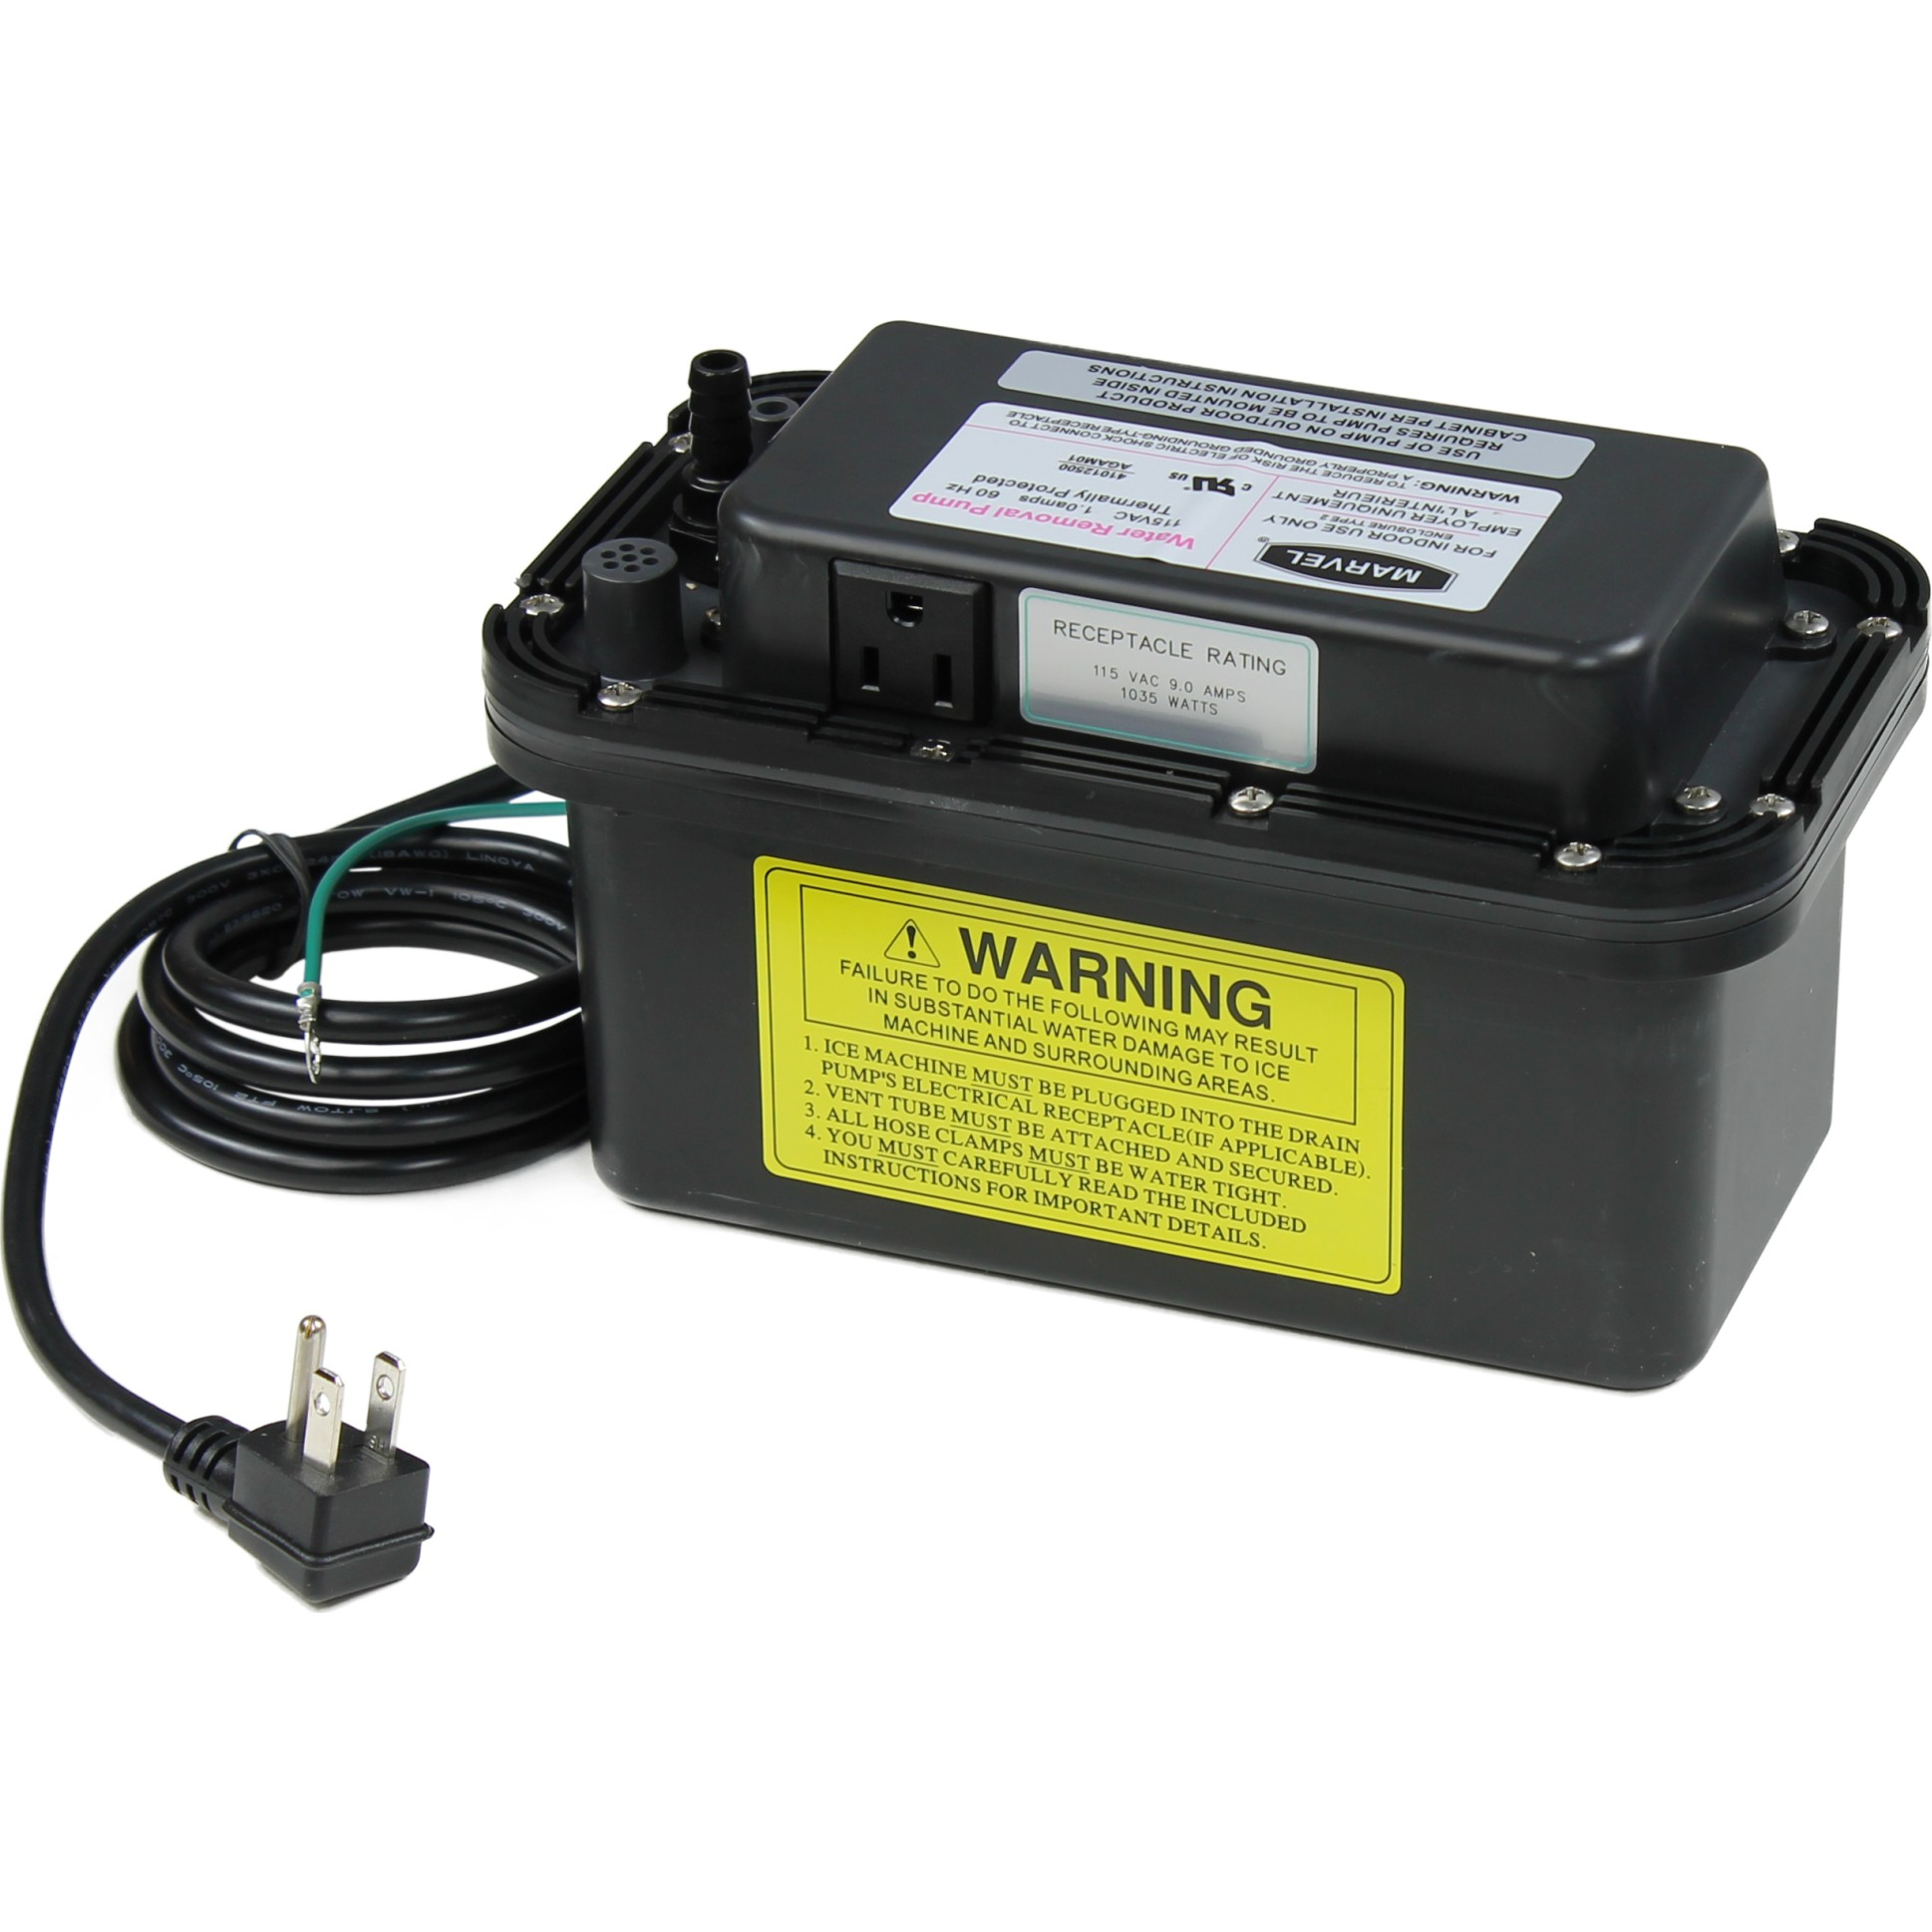 Marvel 42248890 Ice Maker Drain Pump